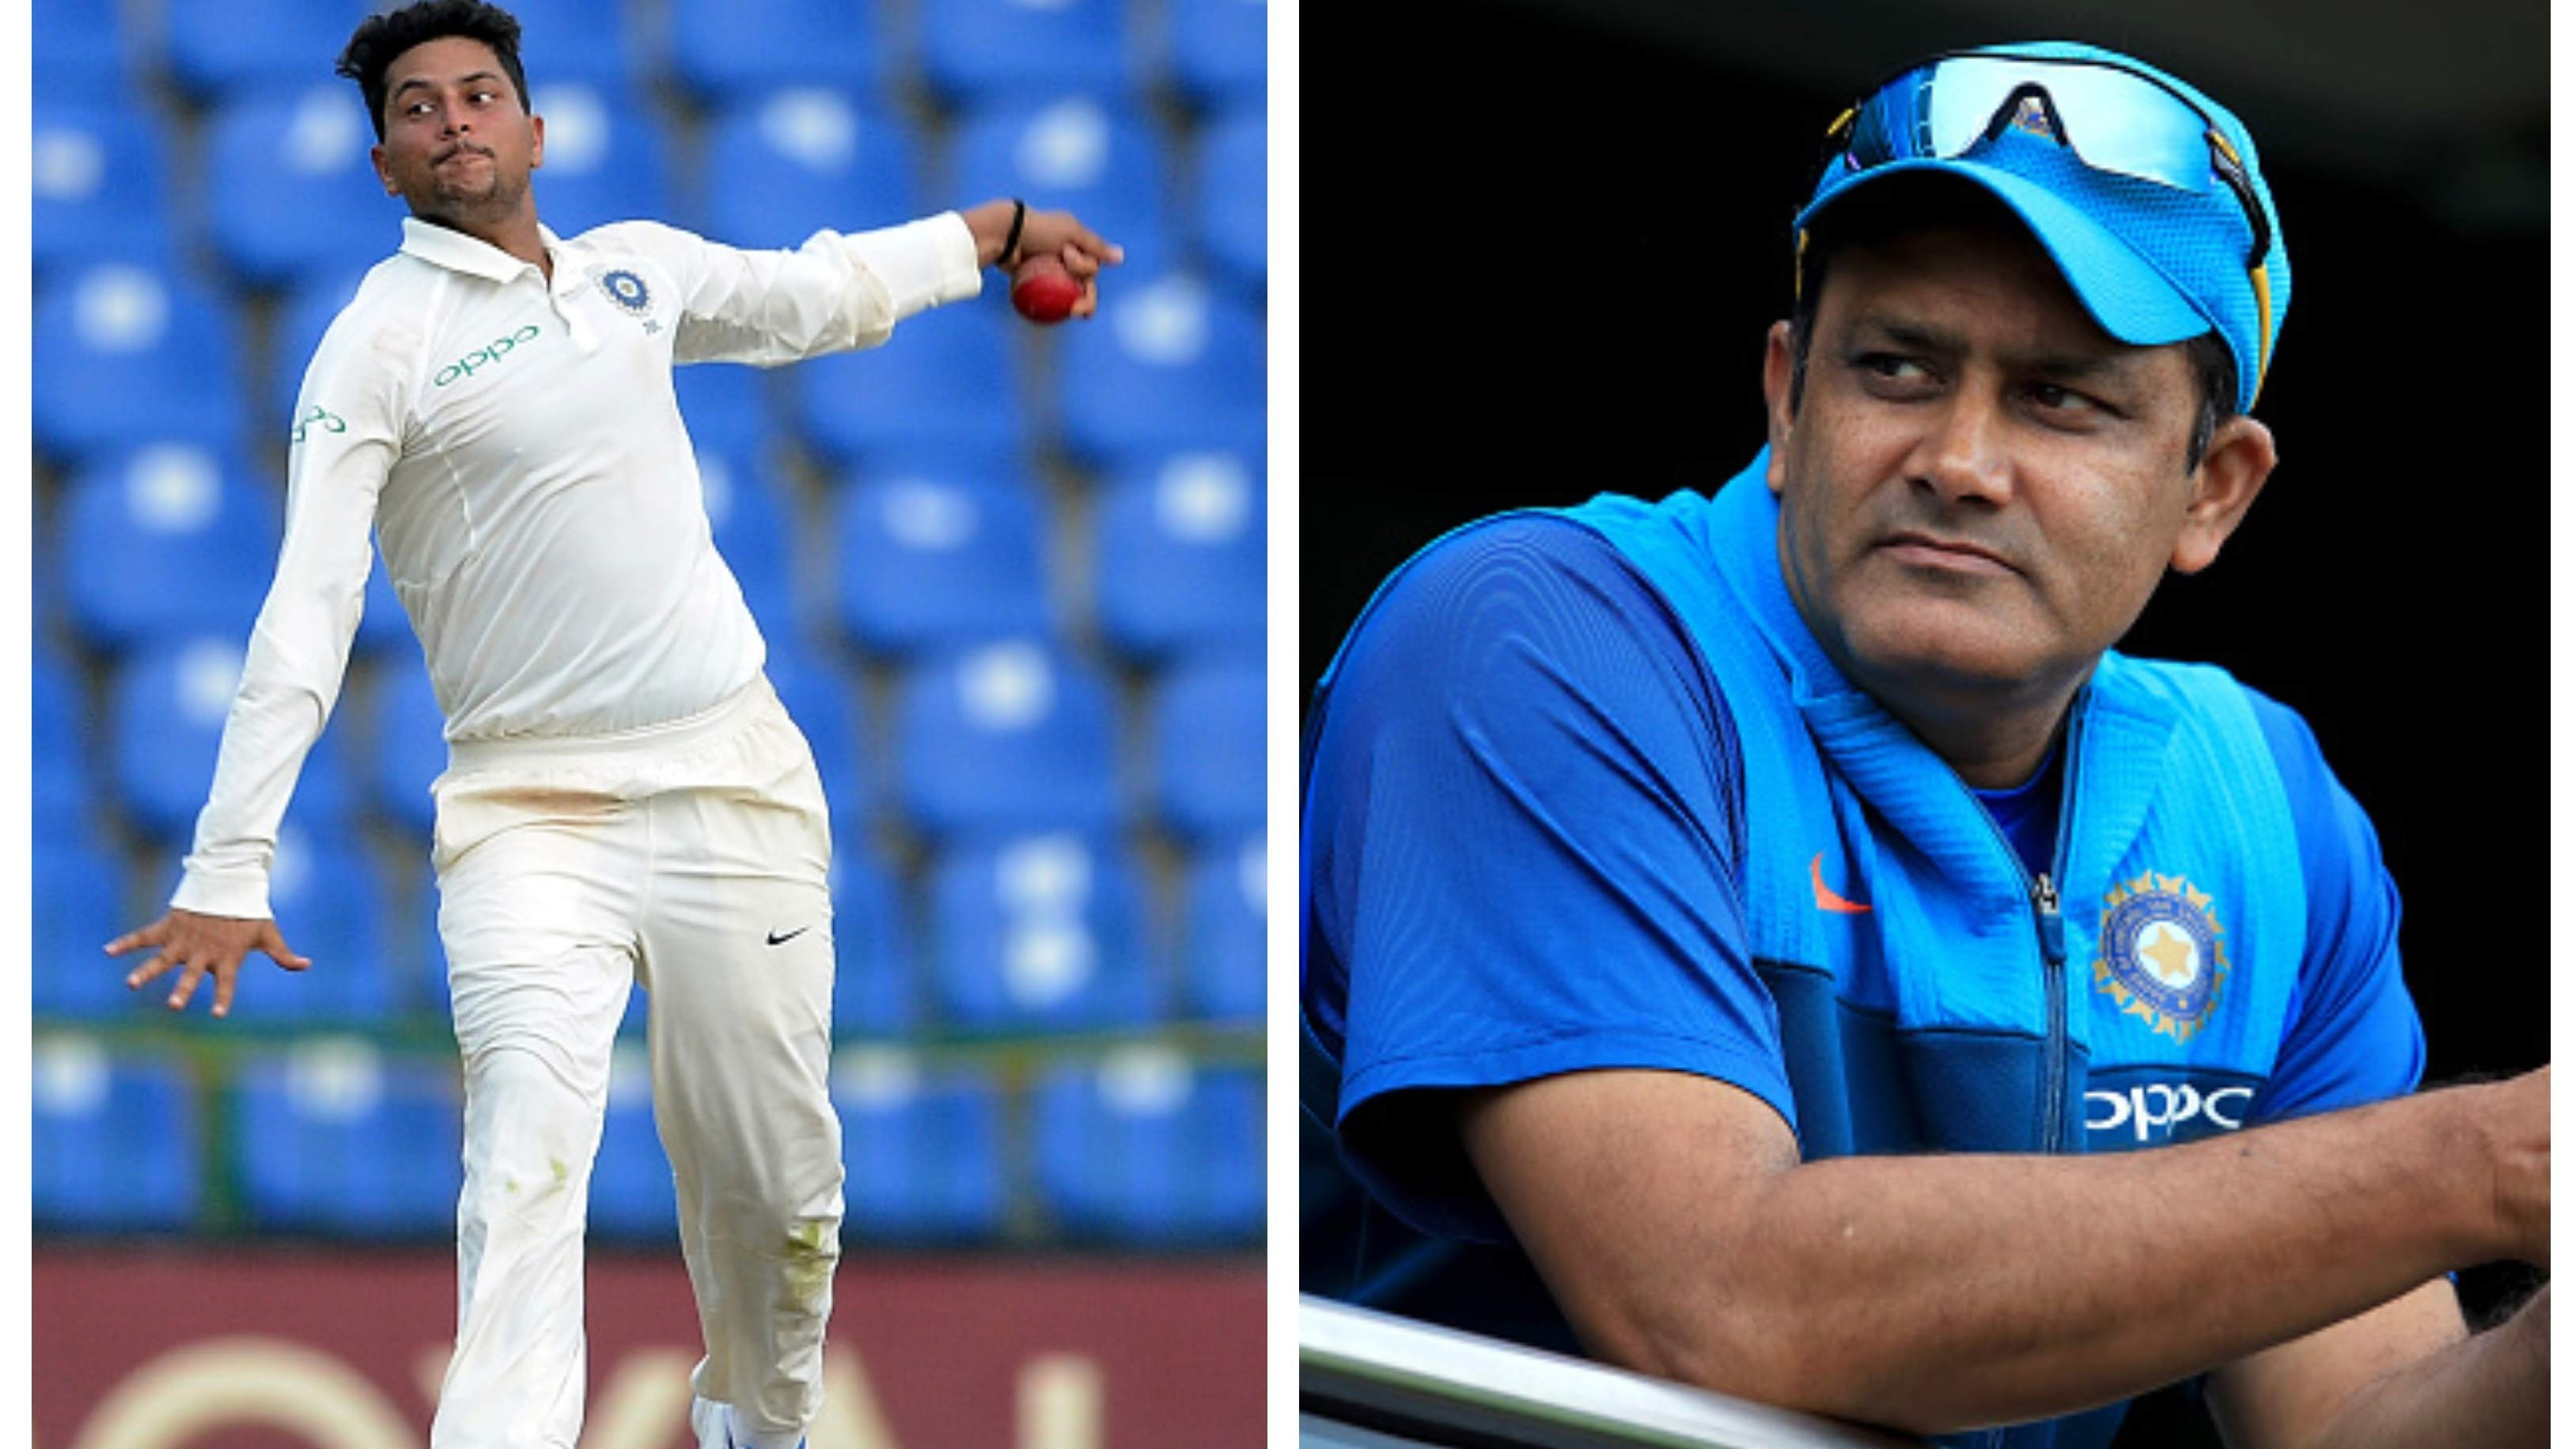 """You have to take five wickets"", Kuldeep Yadav recalls Anil Kumble's message ahead of Test debut"